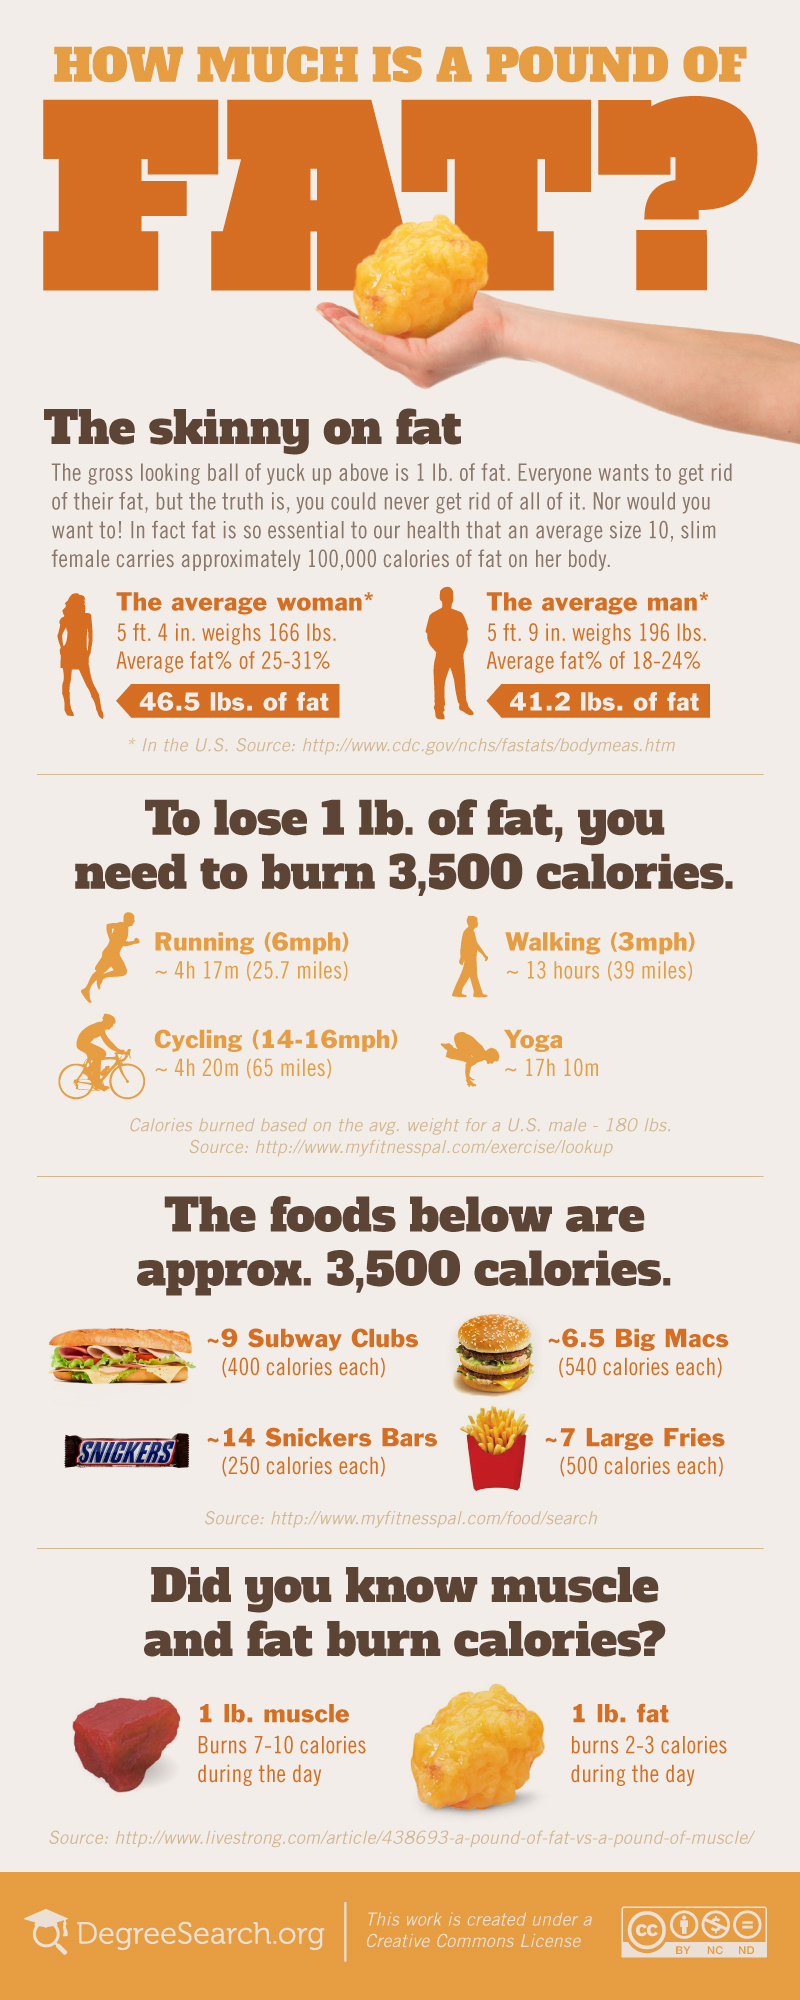 How Much is a Pound of Fat?